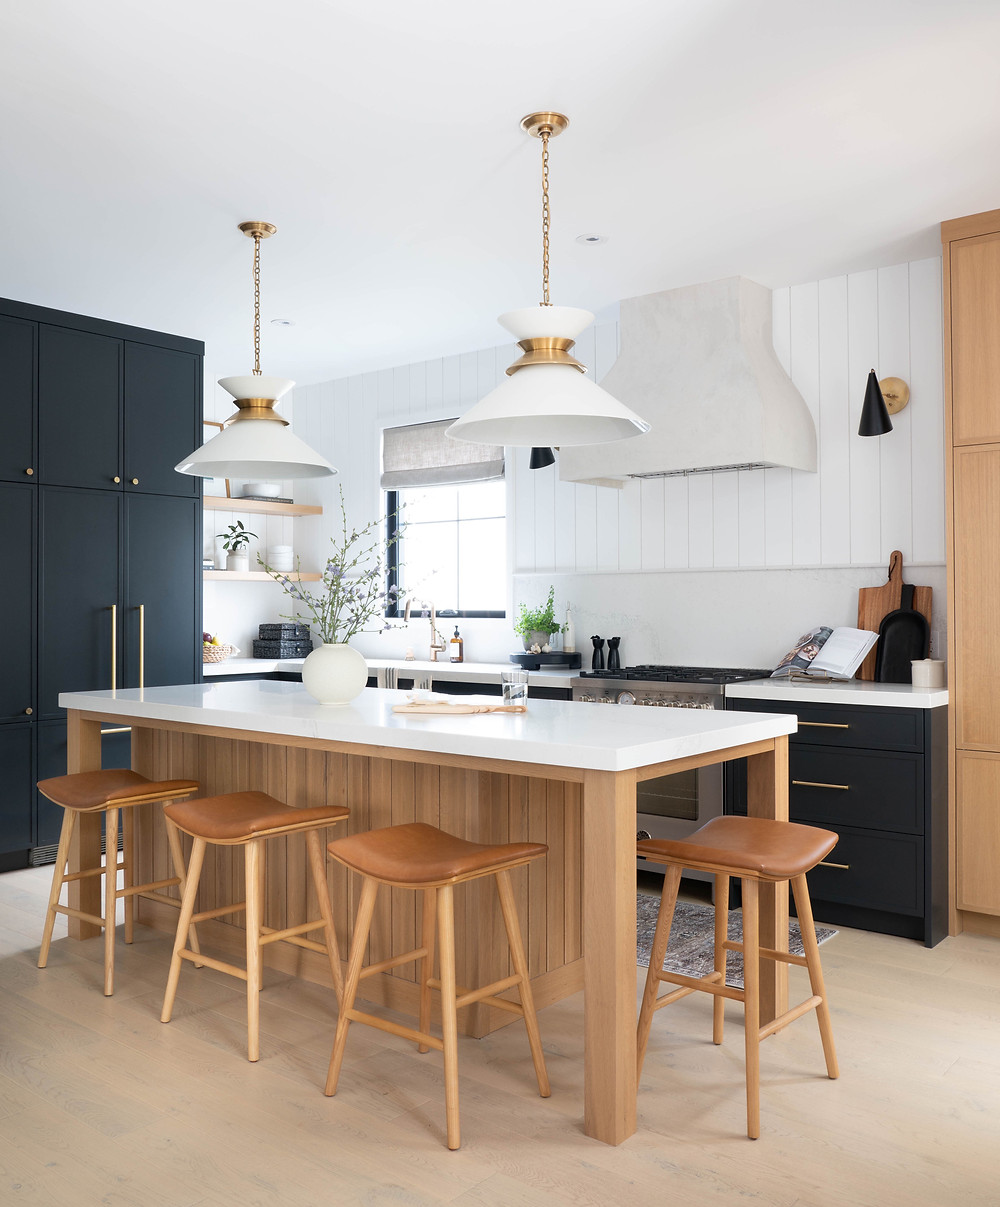 Custom cabinetry throughout the kitchen disguises appliances and adds a personalized functionality to the space. Utilizing every space possible and maintaining ease of movement throughout the kitchen meant thoughtfully designing customized storage solutions.